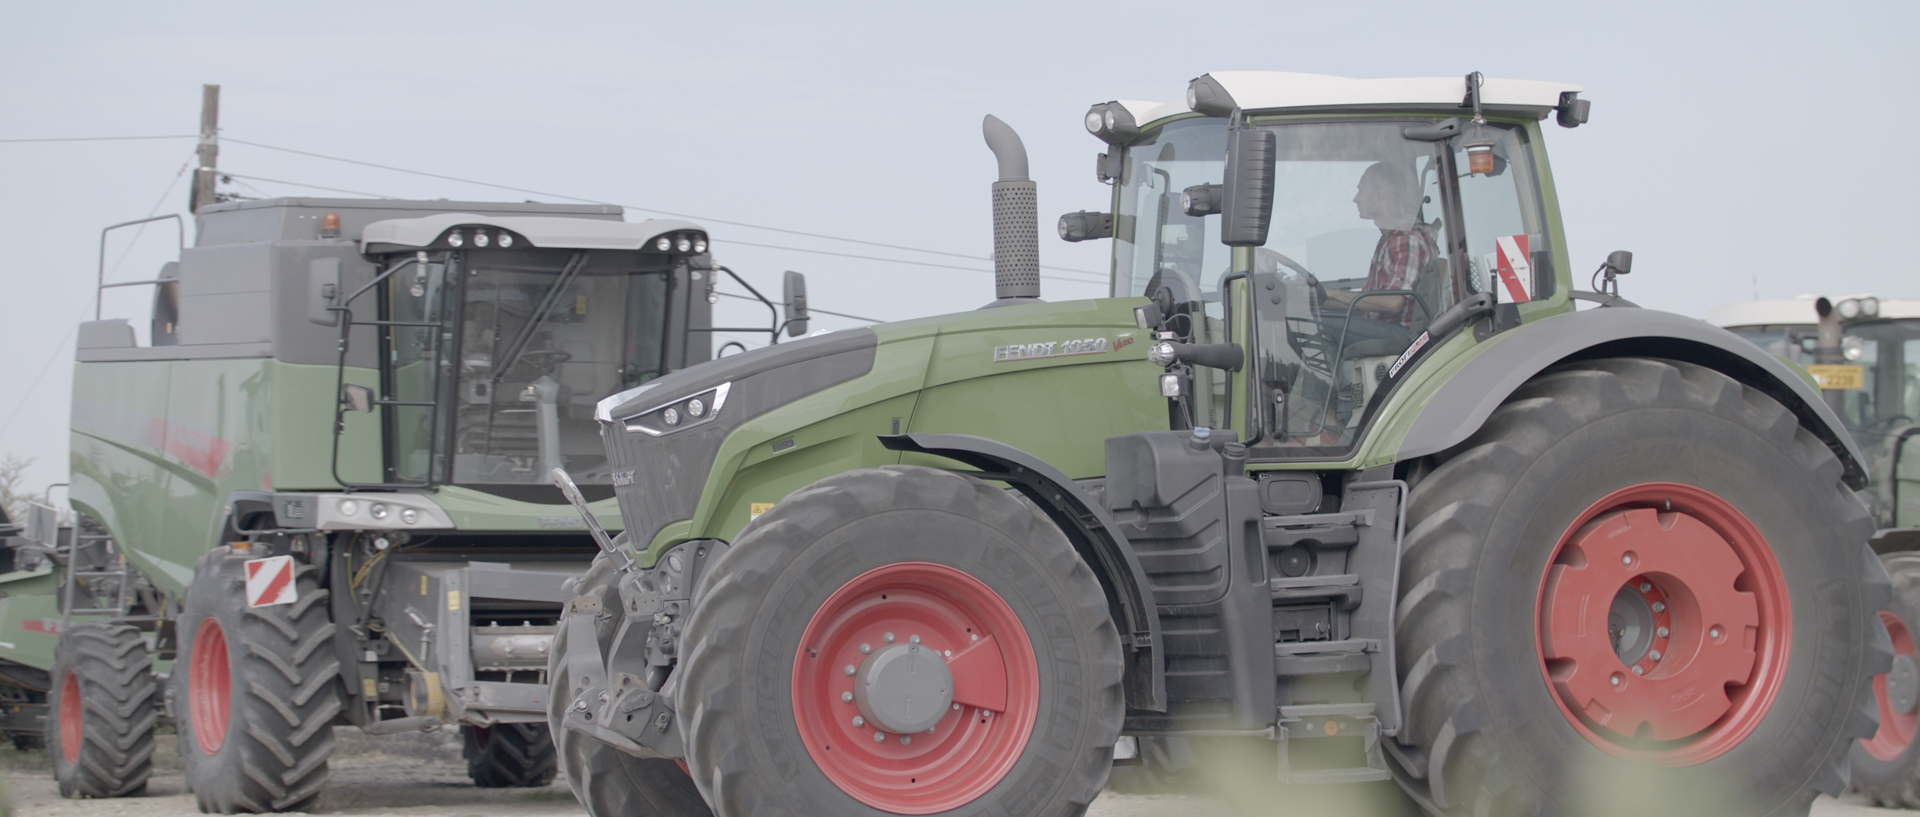 fendt 1050 tractor mewi services video by popotam productions video agency timisoara before color grading